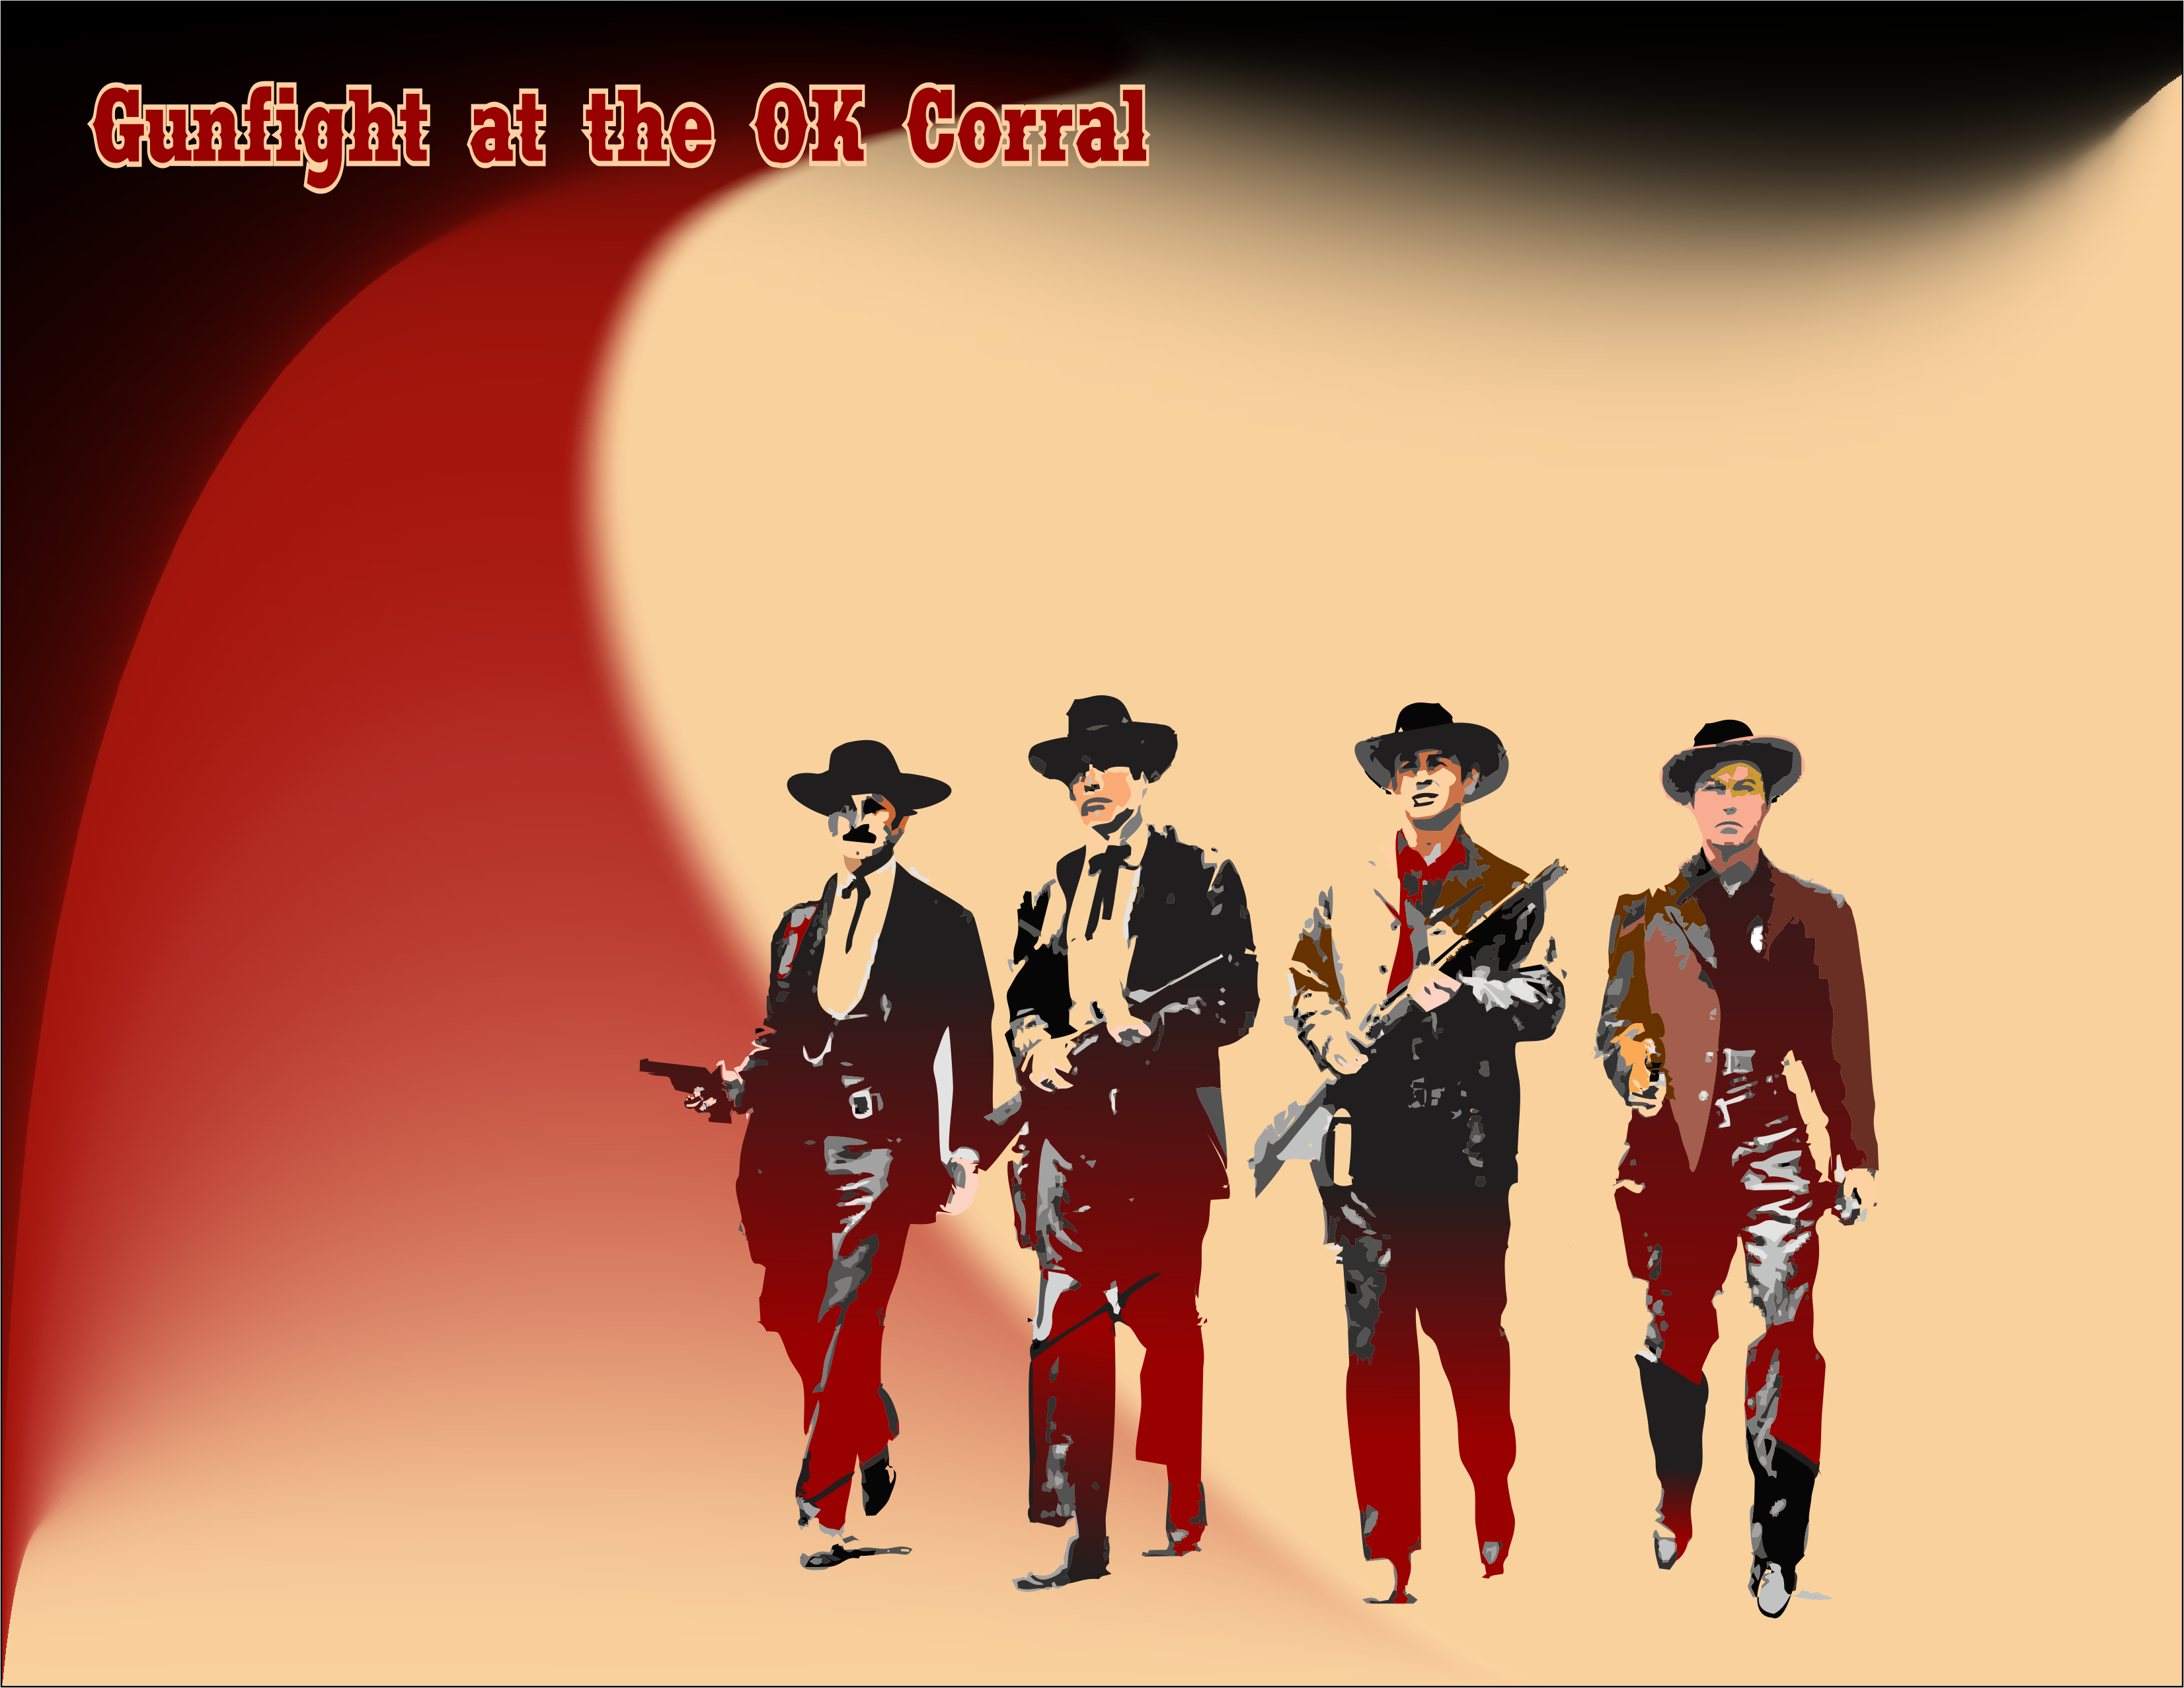 Iconic Images Gunfight At OK Corral 2 My Favorite